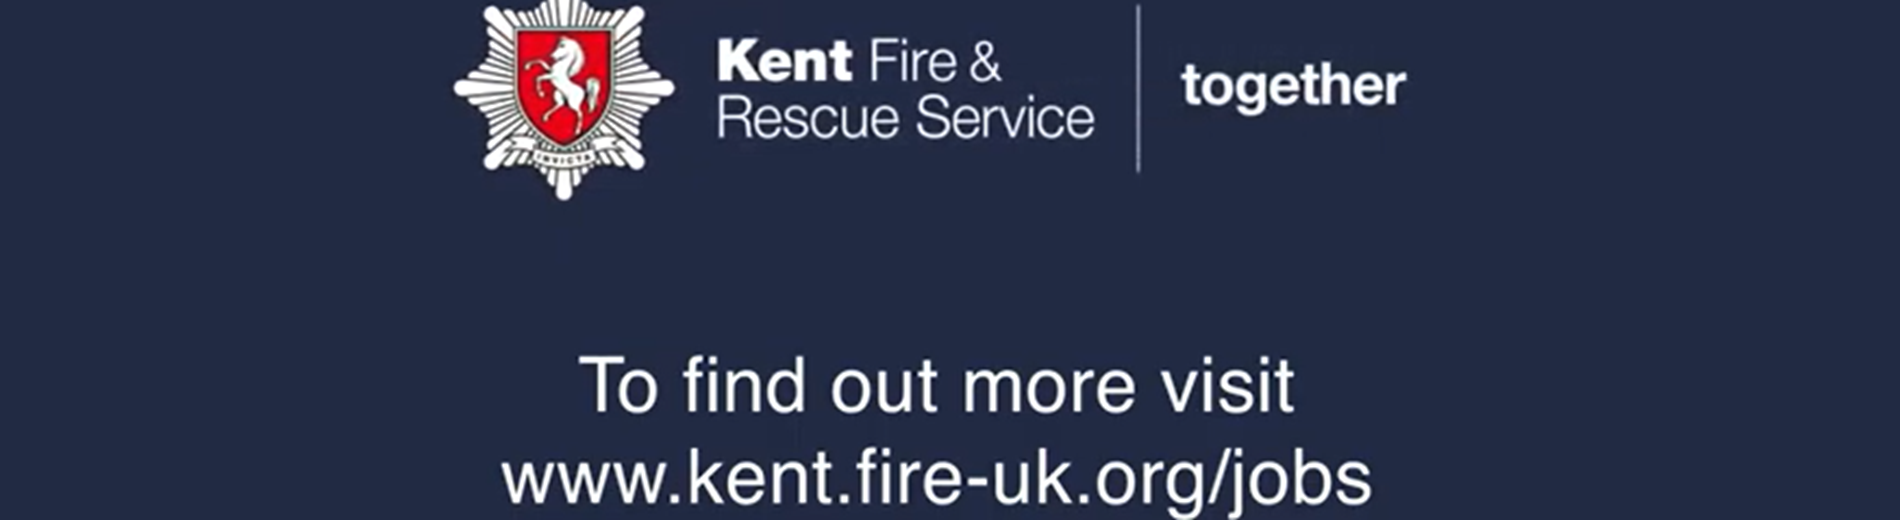 Inspectors keep buildings fire safe to protect people of Kent